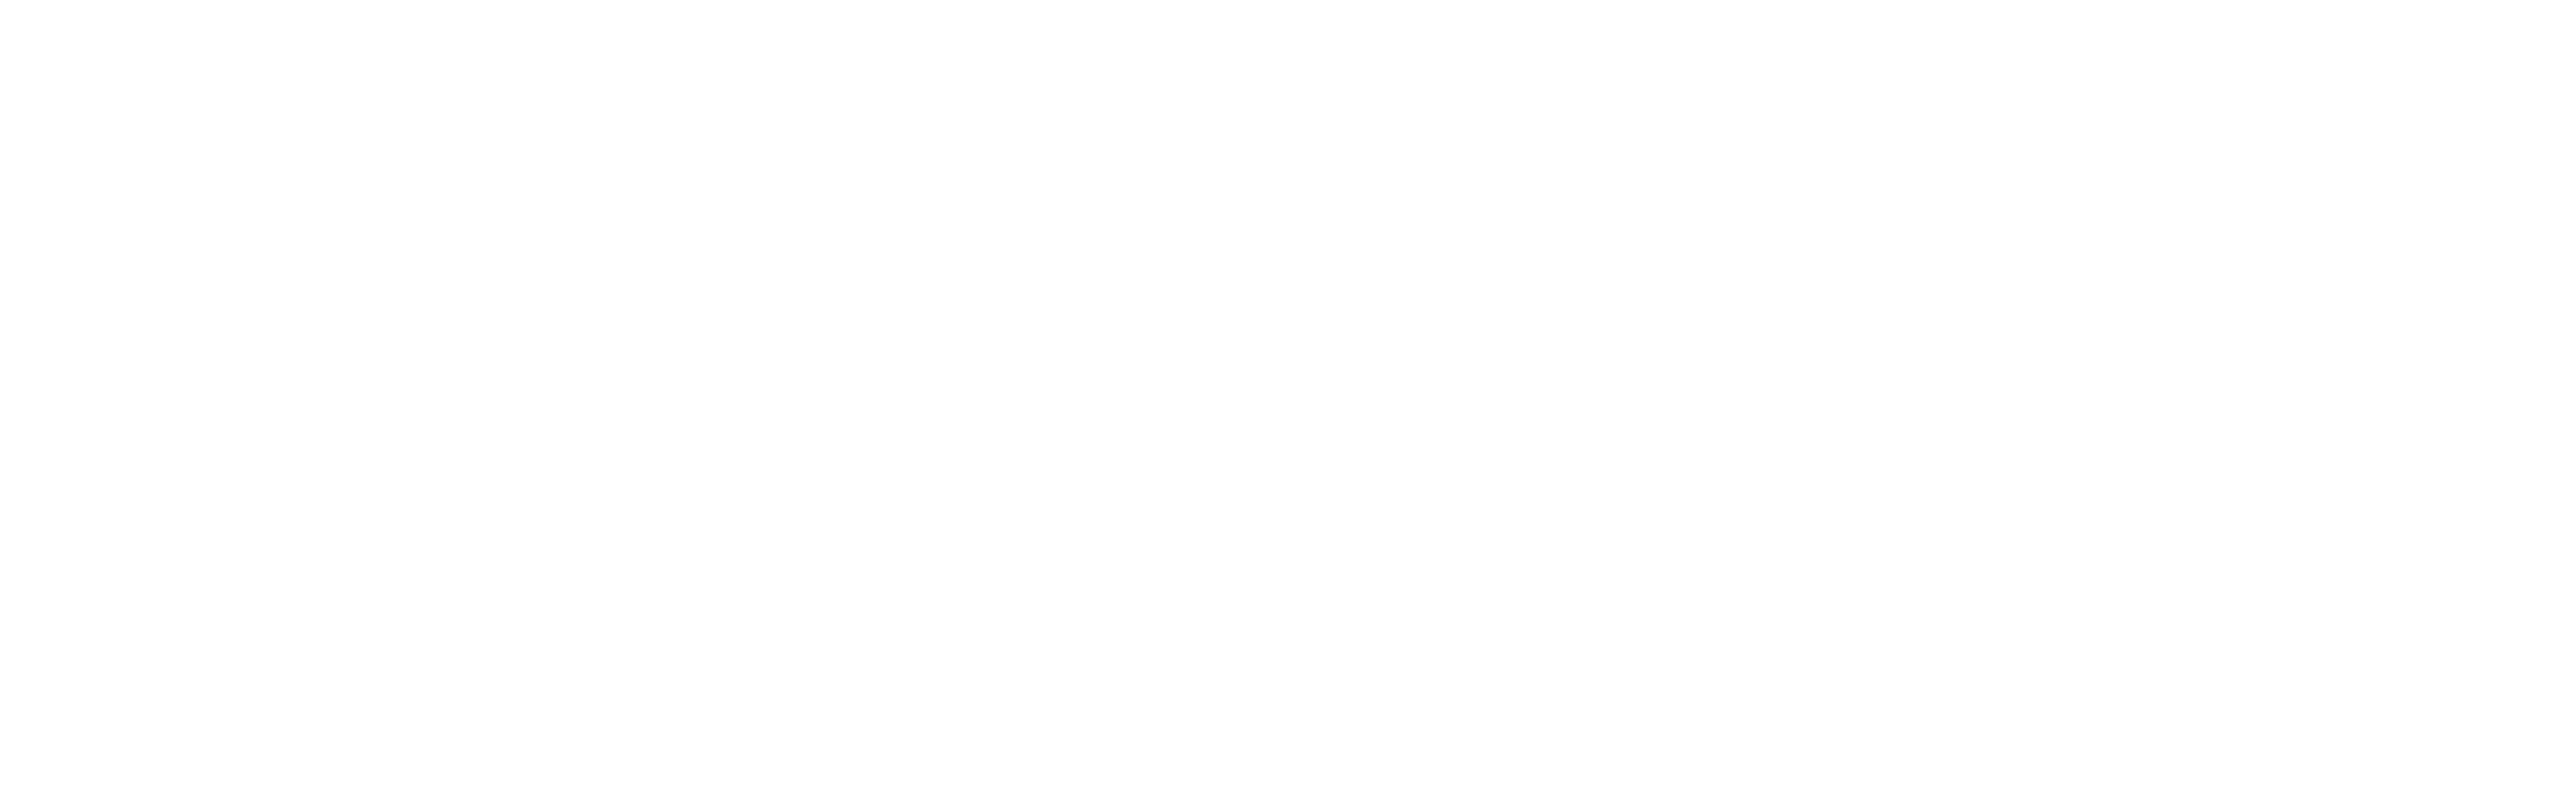 Canadian Unitarian Council Logo